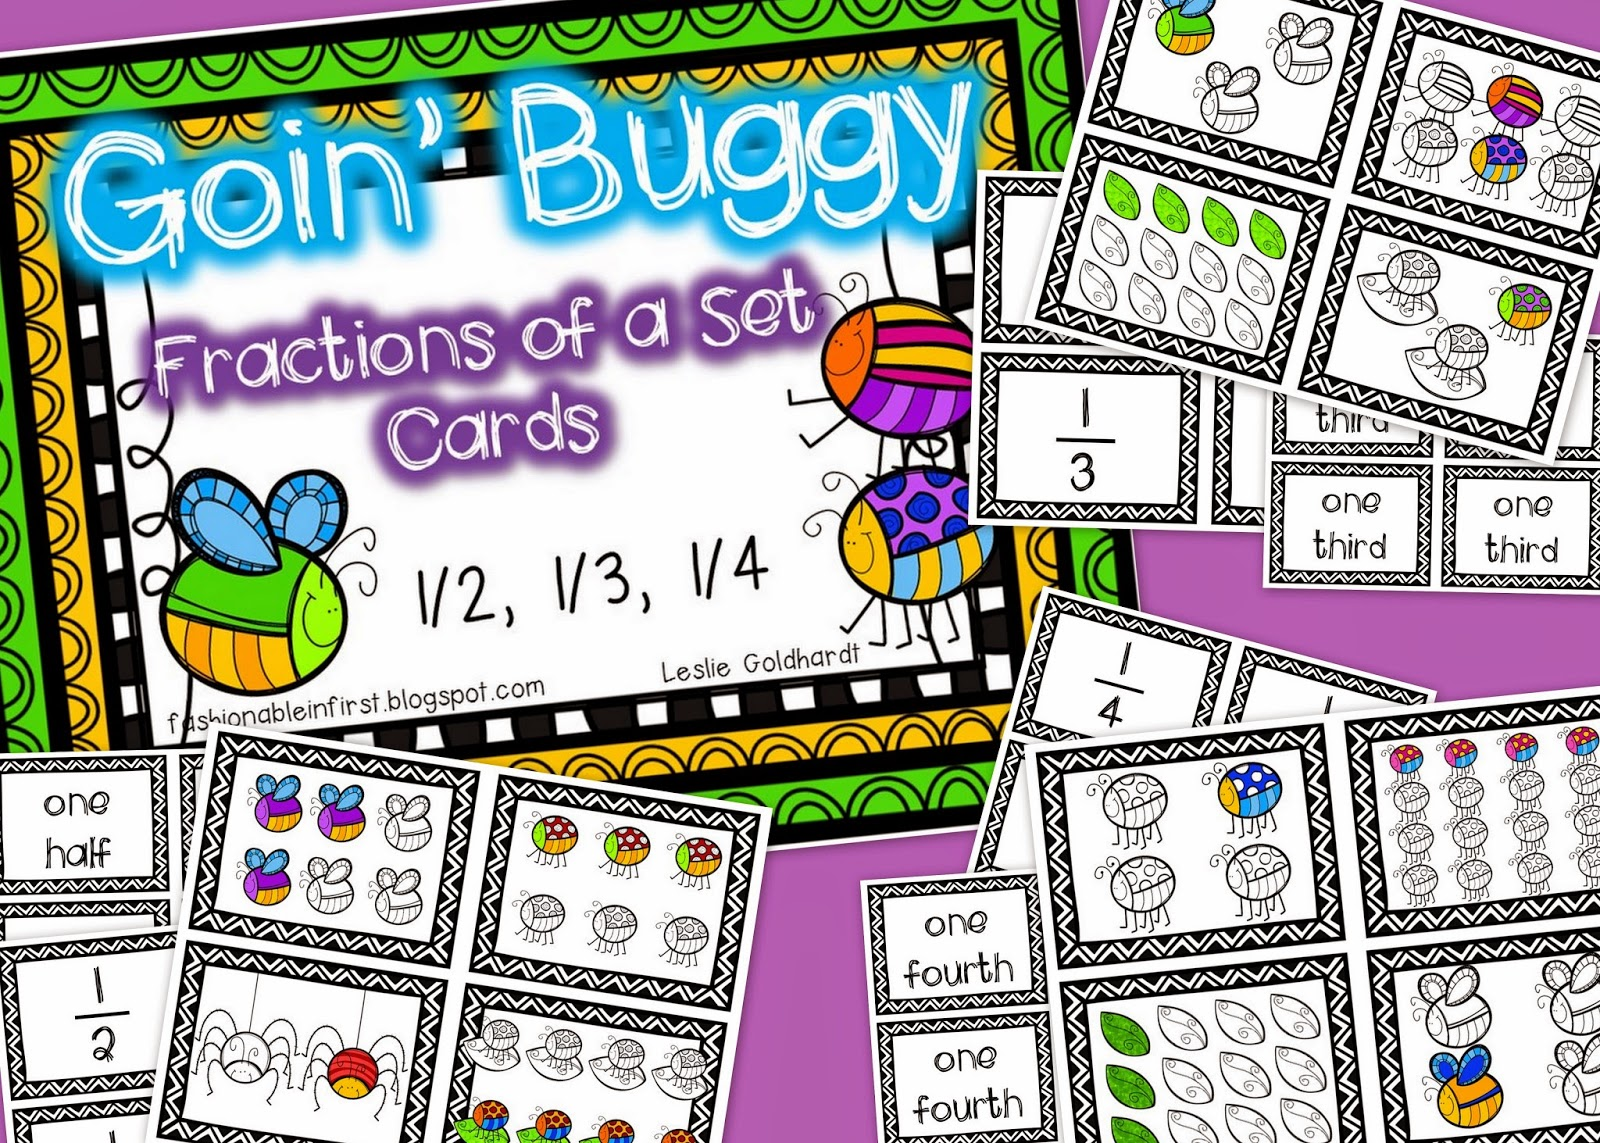 http://www.teacherspayteachers.com/Product/FREEBIE-Goin-Buggy-Fractions-of-a-Set-1205739